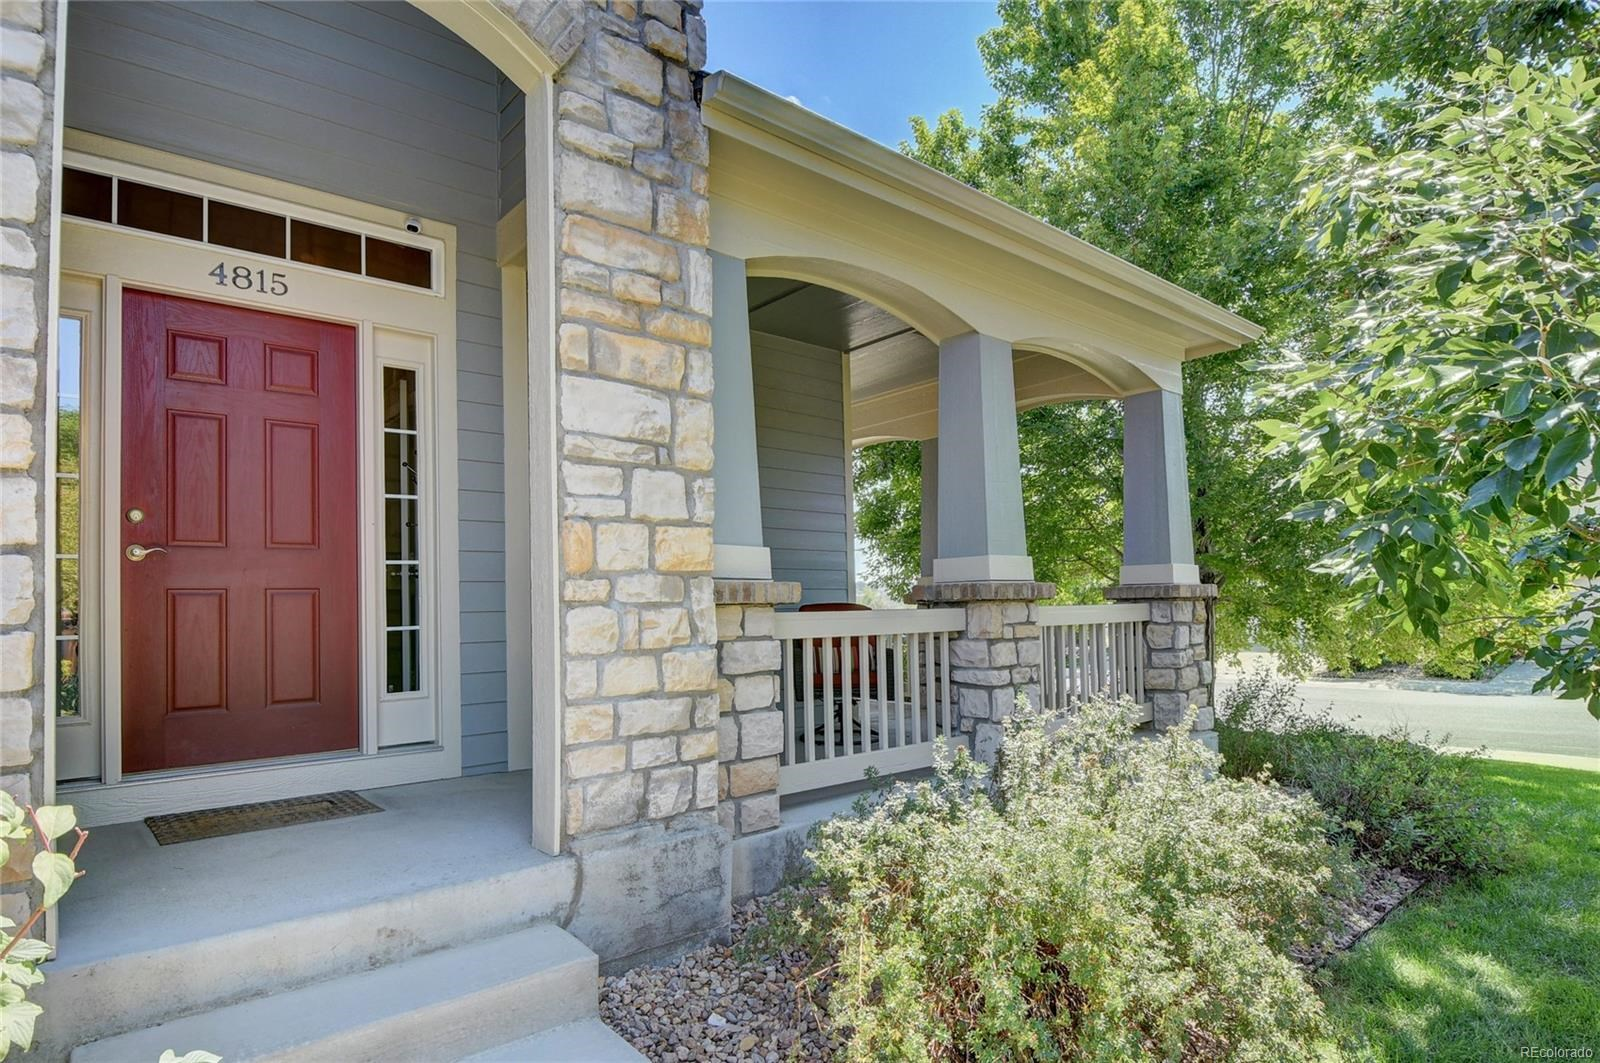 MLS# 5011360 - 19 - 4815 W 116th Court, Westminster, CO 80031